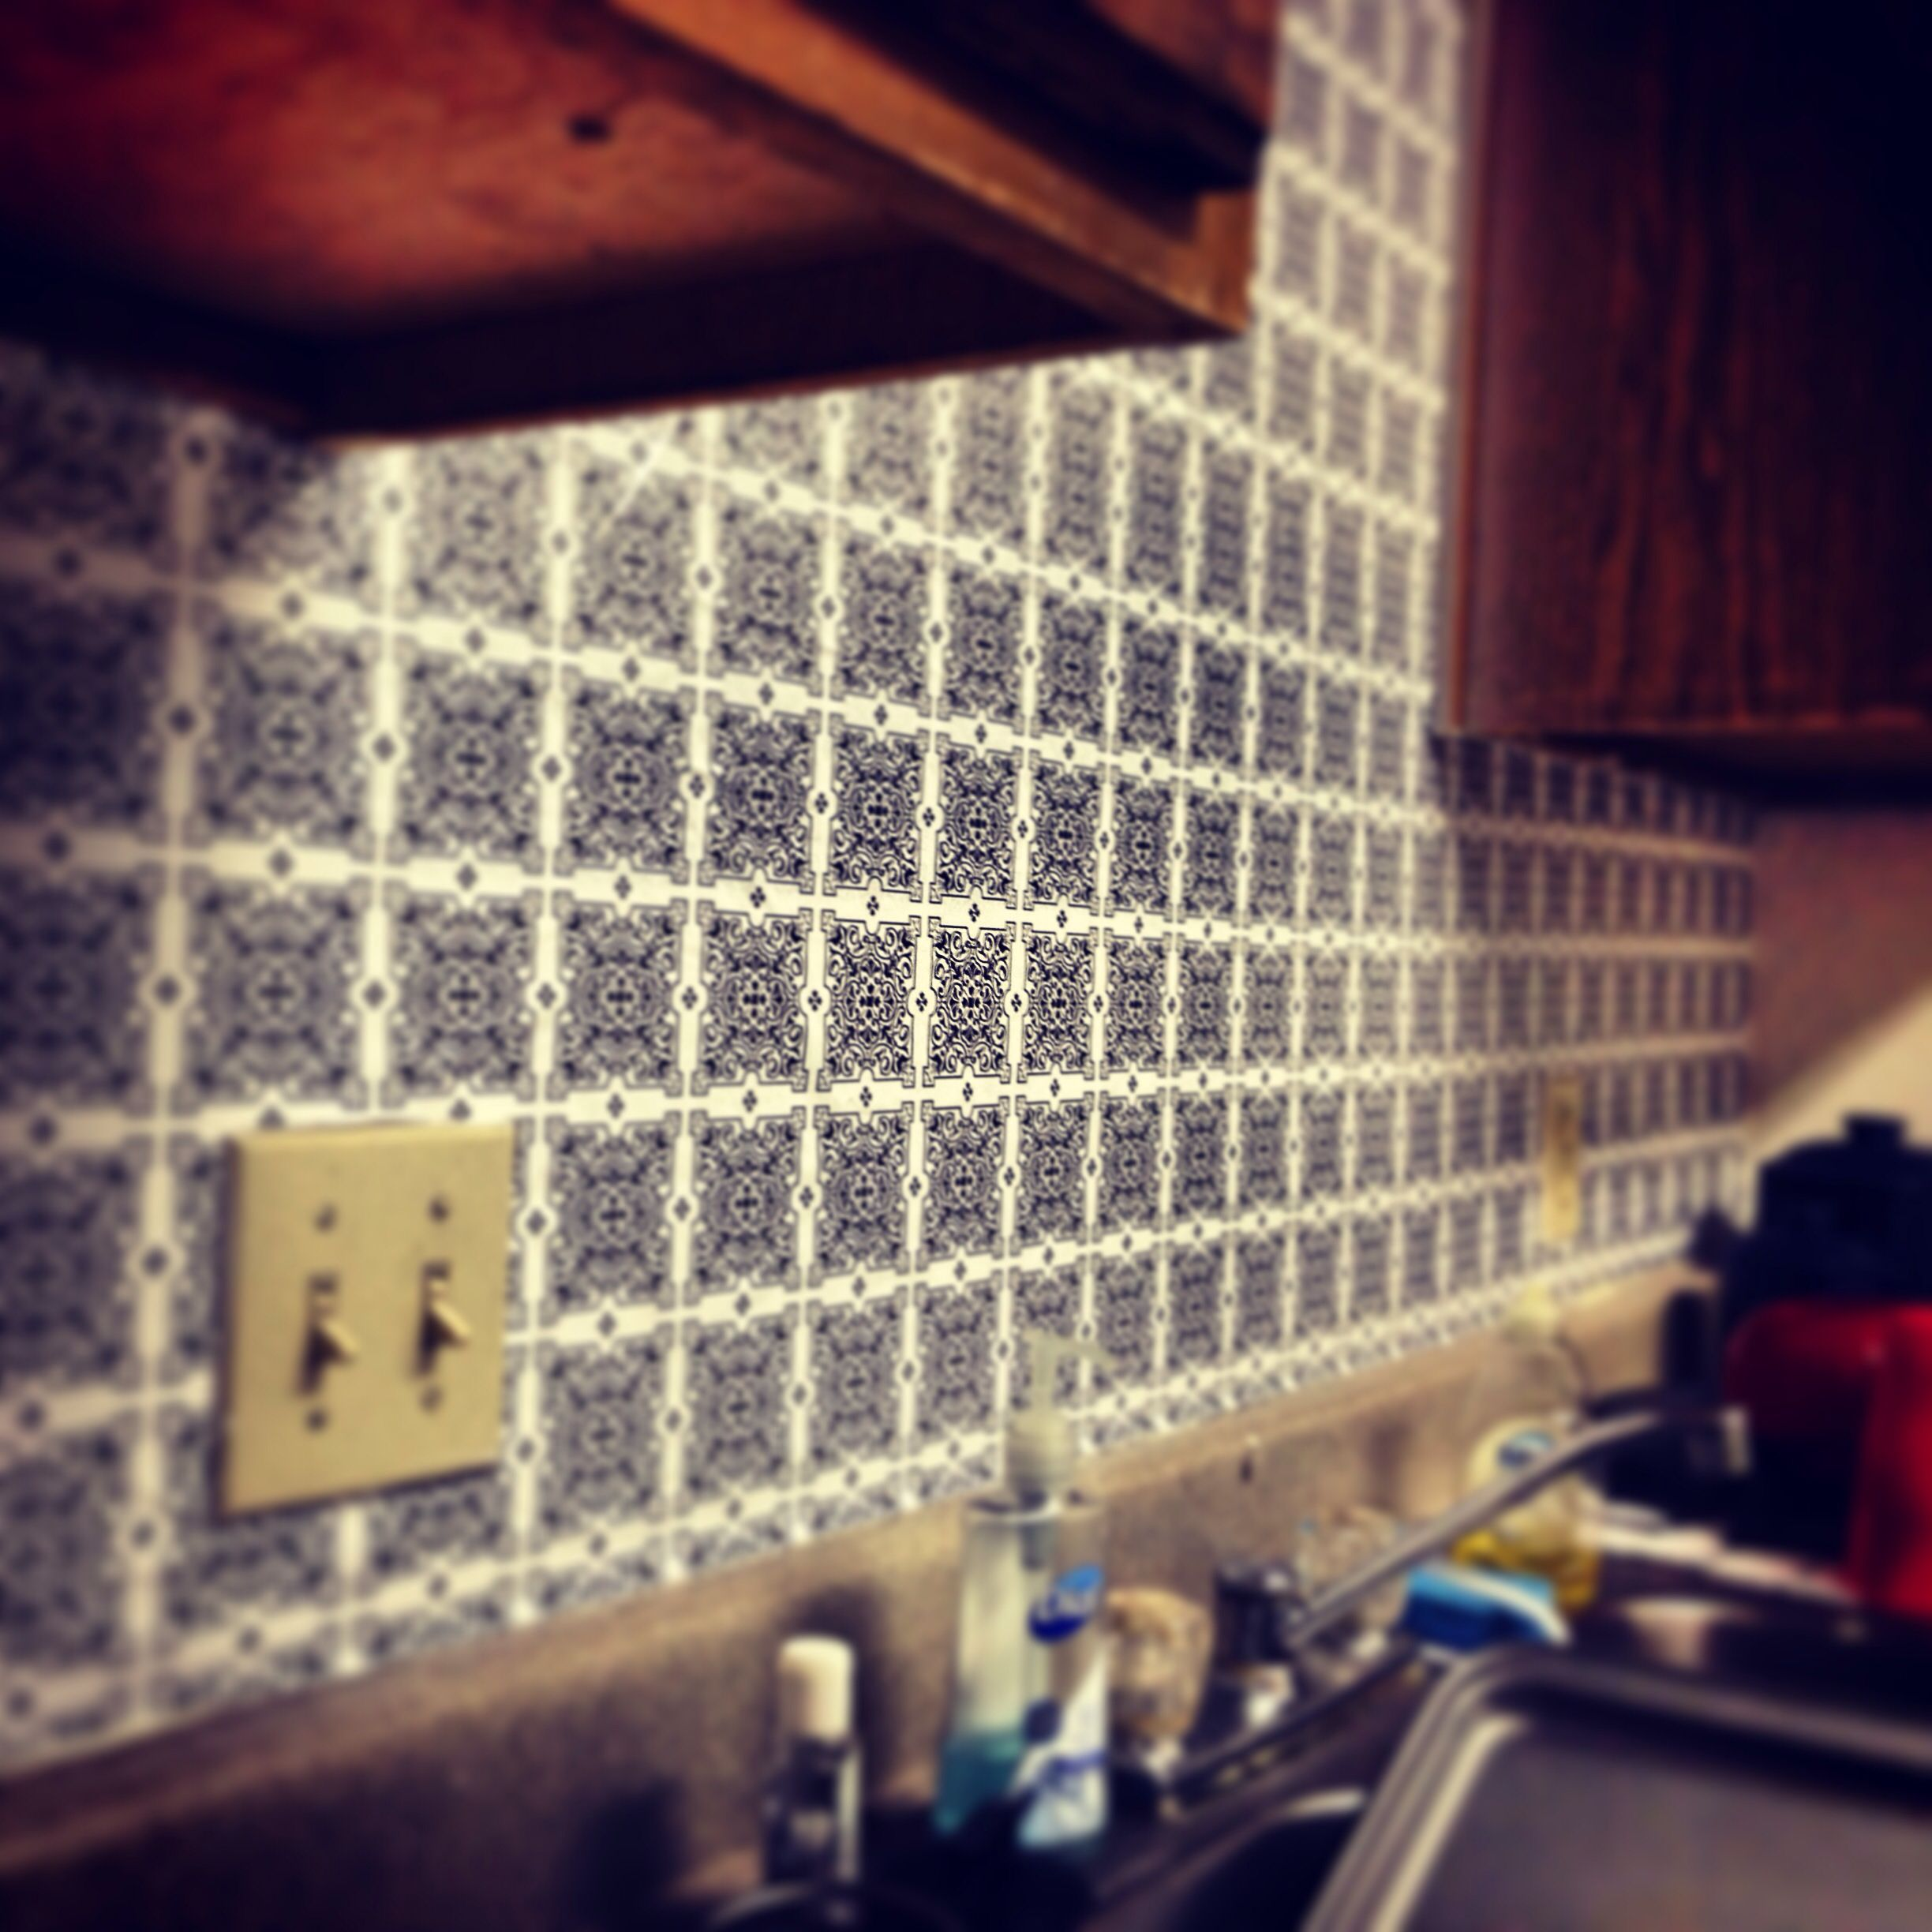 Using contact paper as a backsplash or wallpaper. Easy, super cheap on apartment kitchen decor, kitchen color ideas, apartment kitchen colors, apartment bar ideas, apartment kitchen storage solutions, apartment modern kitchen ideas, brown kitchen cabinets ideas, apartment walls ideas, apartment kitchen design ideas, apartment lighting ideas, apartment kitchen cabinets, cheap kitchen makeover ideas, apartment kitchen living room ideas, apartment kitchen ceramic ideas, apartment kitchen organization, apartment kitchen remodel ideas, apartment kitchen makeovers, apartment kitchen appliances, apartment flooring ideas, small open kitchen design ideas,